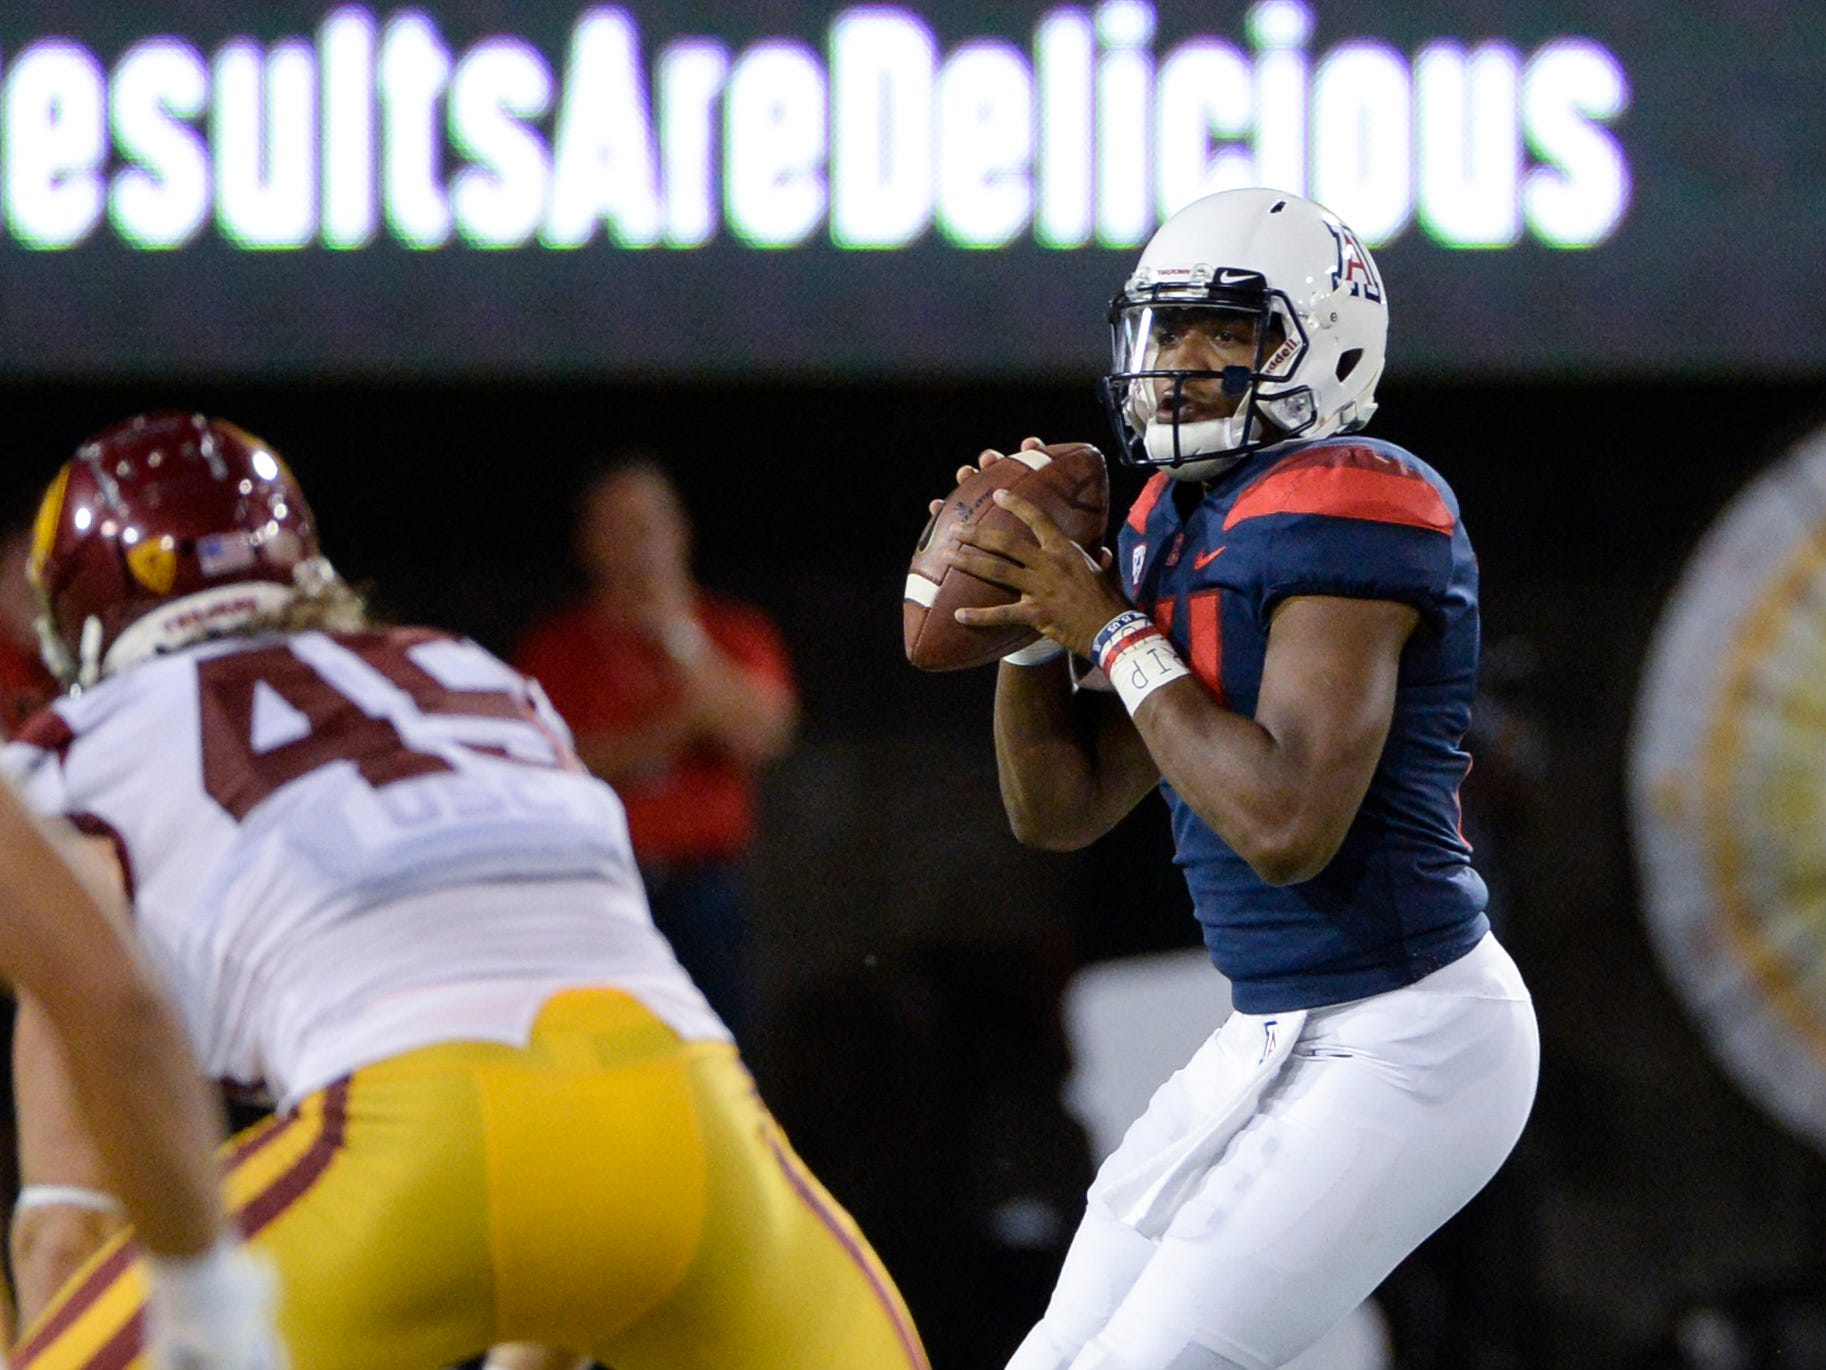 Sep 29, 2018; Tucson, AZ, USA; Arizona Wildcats quarterback Khalil Tate (14) looks to pass the ball against the Southern California Trojans at Arizona Stadium. Mandatory Credit: Casey Sapio-USA TODAY Sports